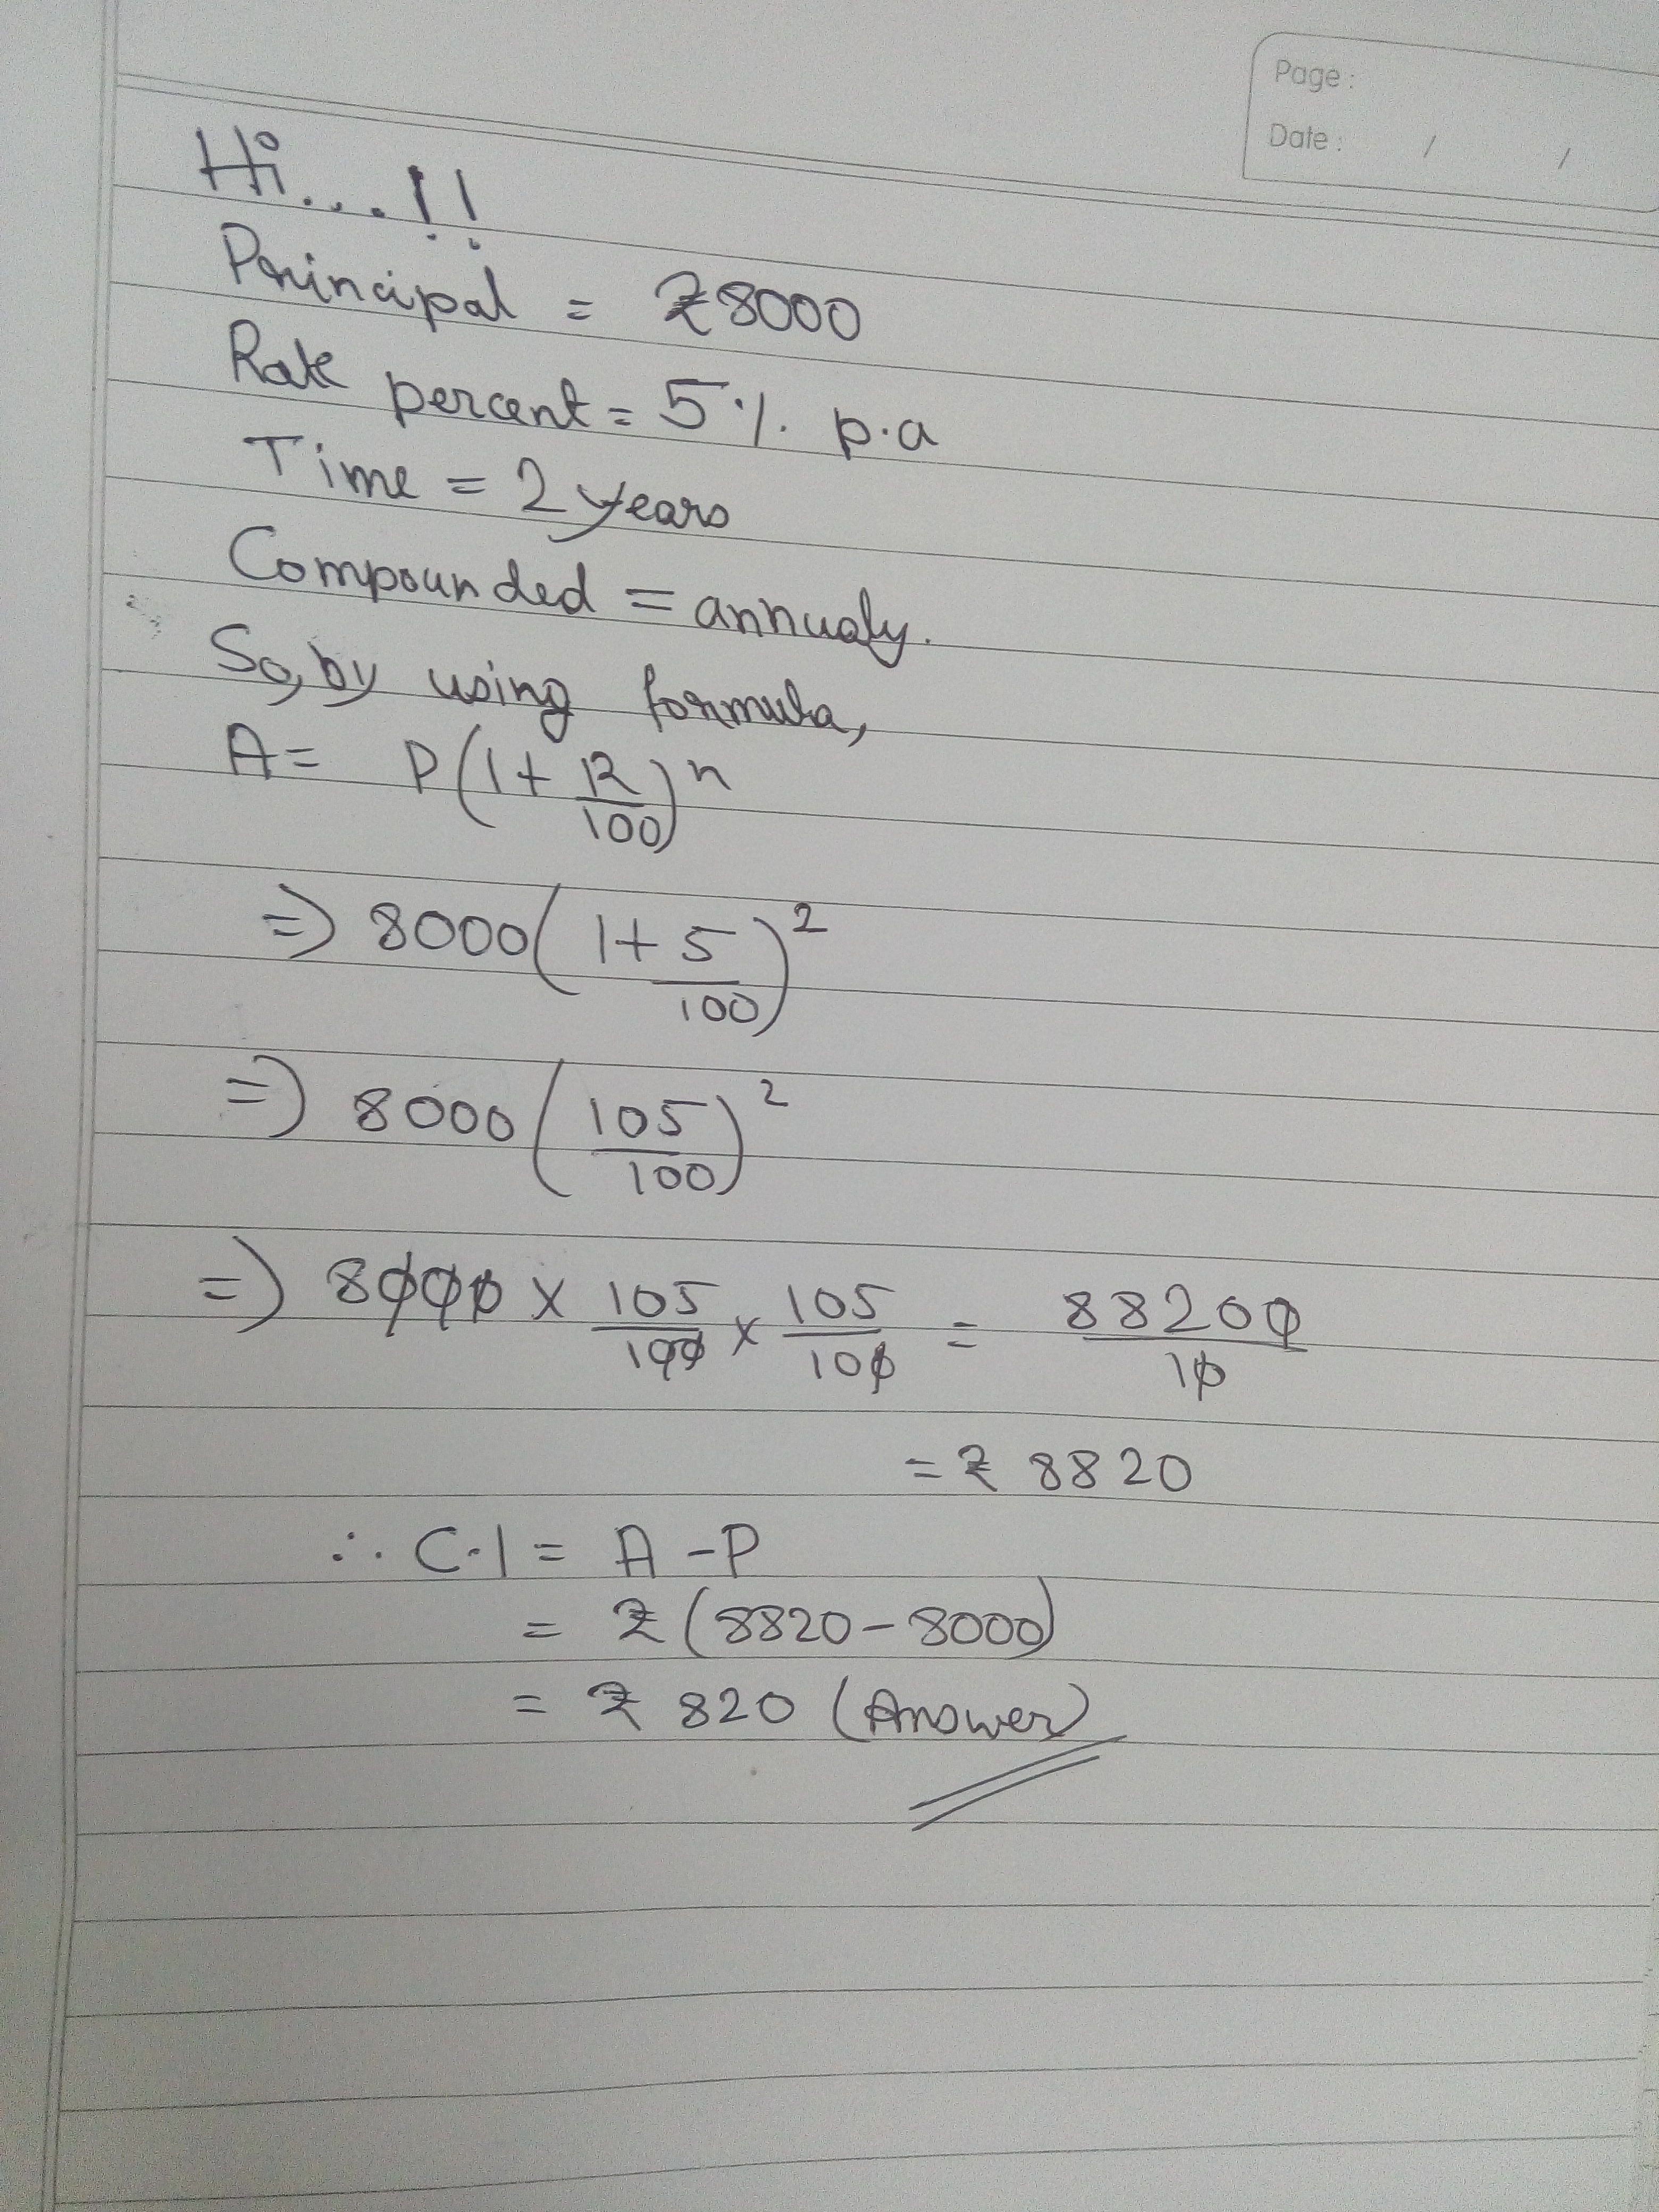 Find The Compound Interest On The Sum Of Rs At 5 Per